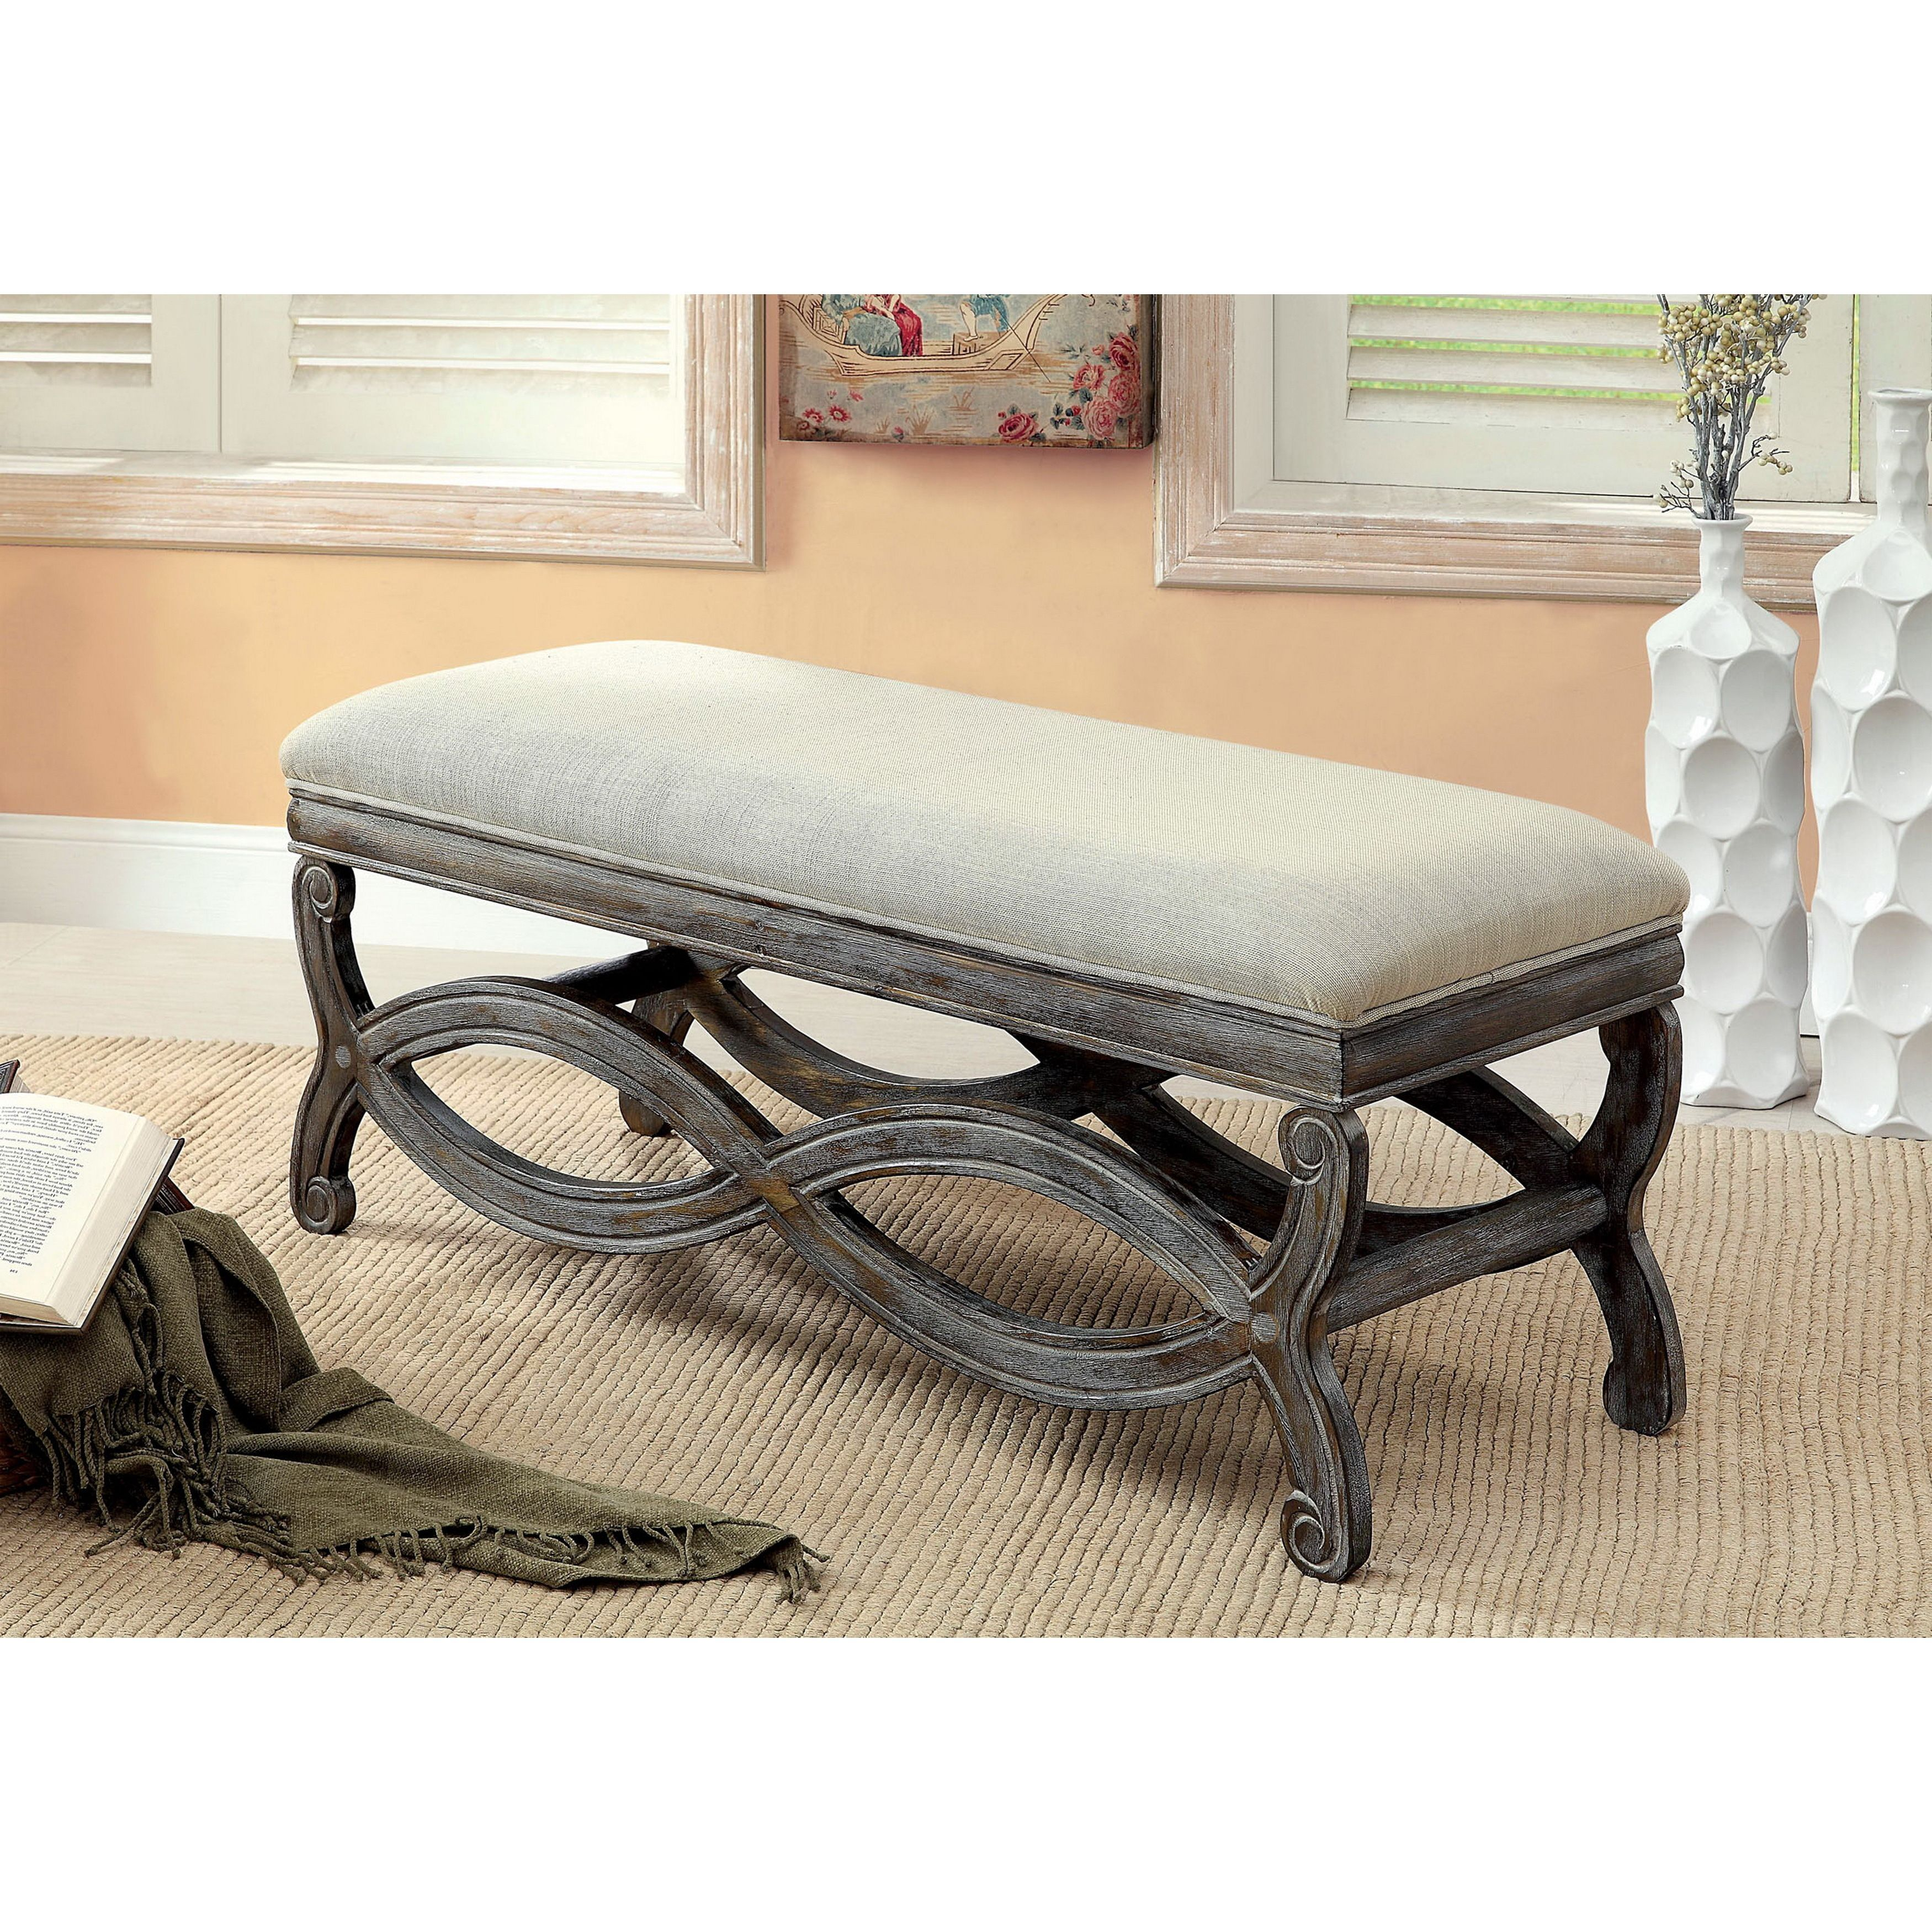 Furniture of America Quazi Gray Solid Wood Reclaimed Bench